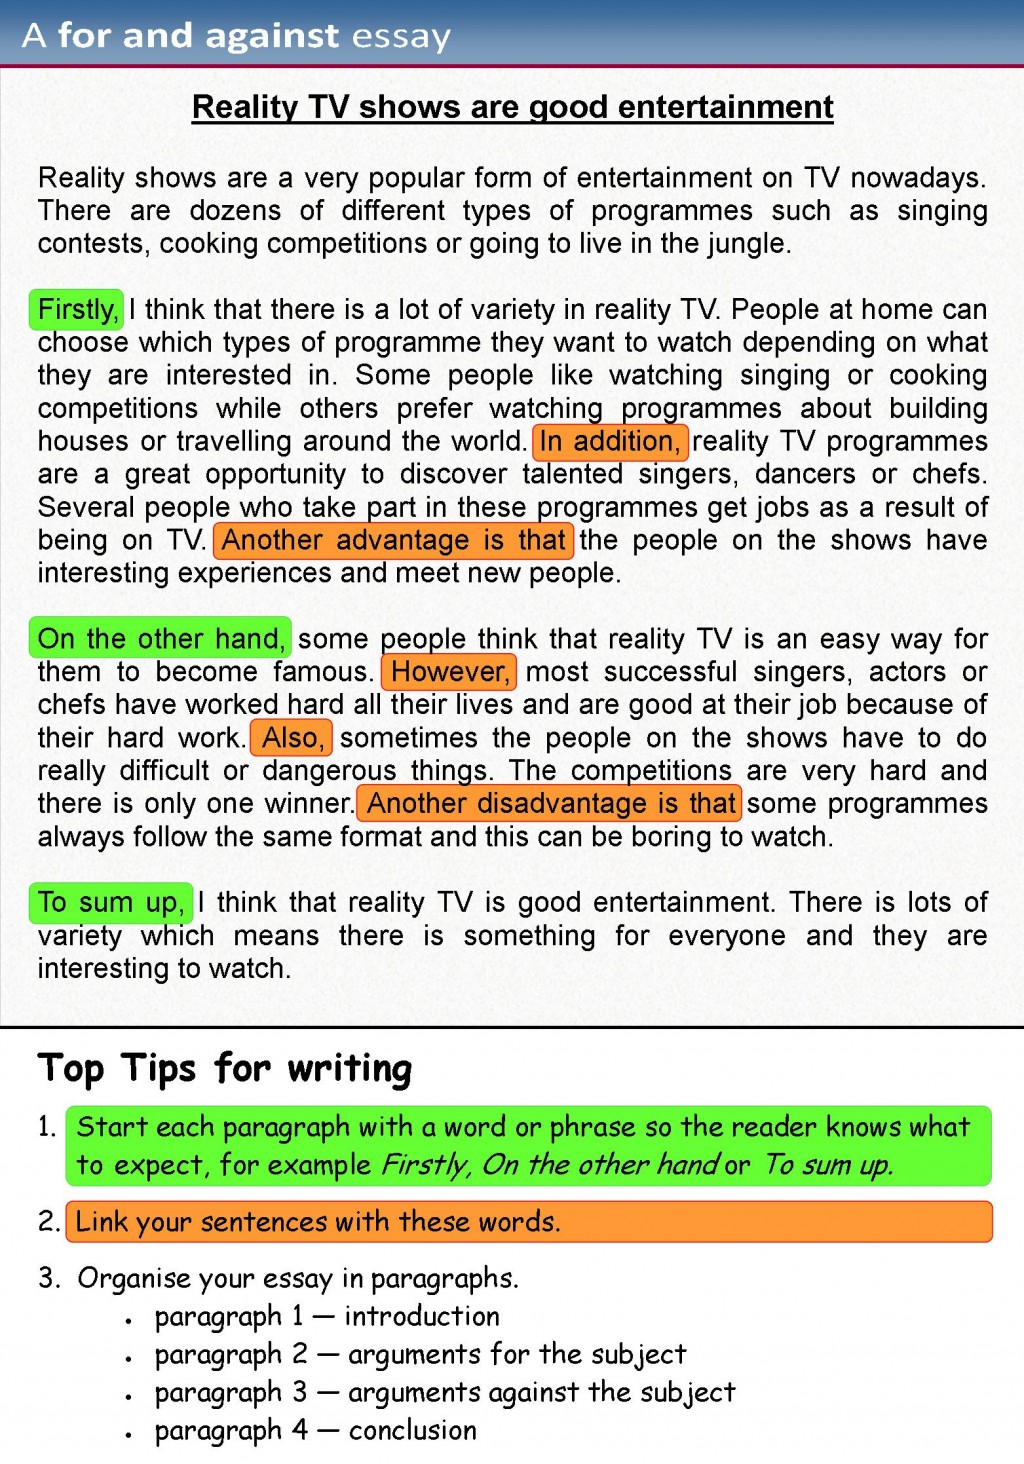 011 For Against Essay 1 Example Structure Incredible Types Pdf Organizational Large